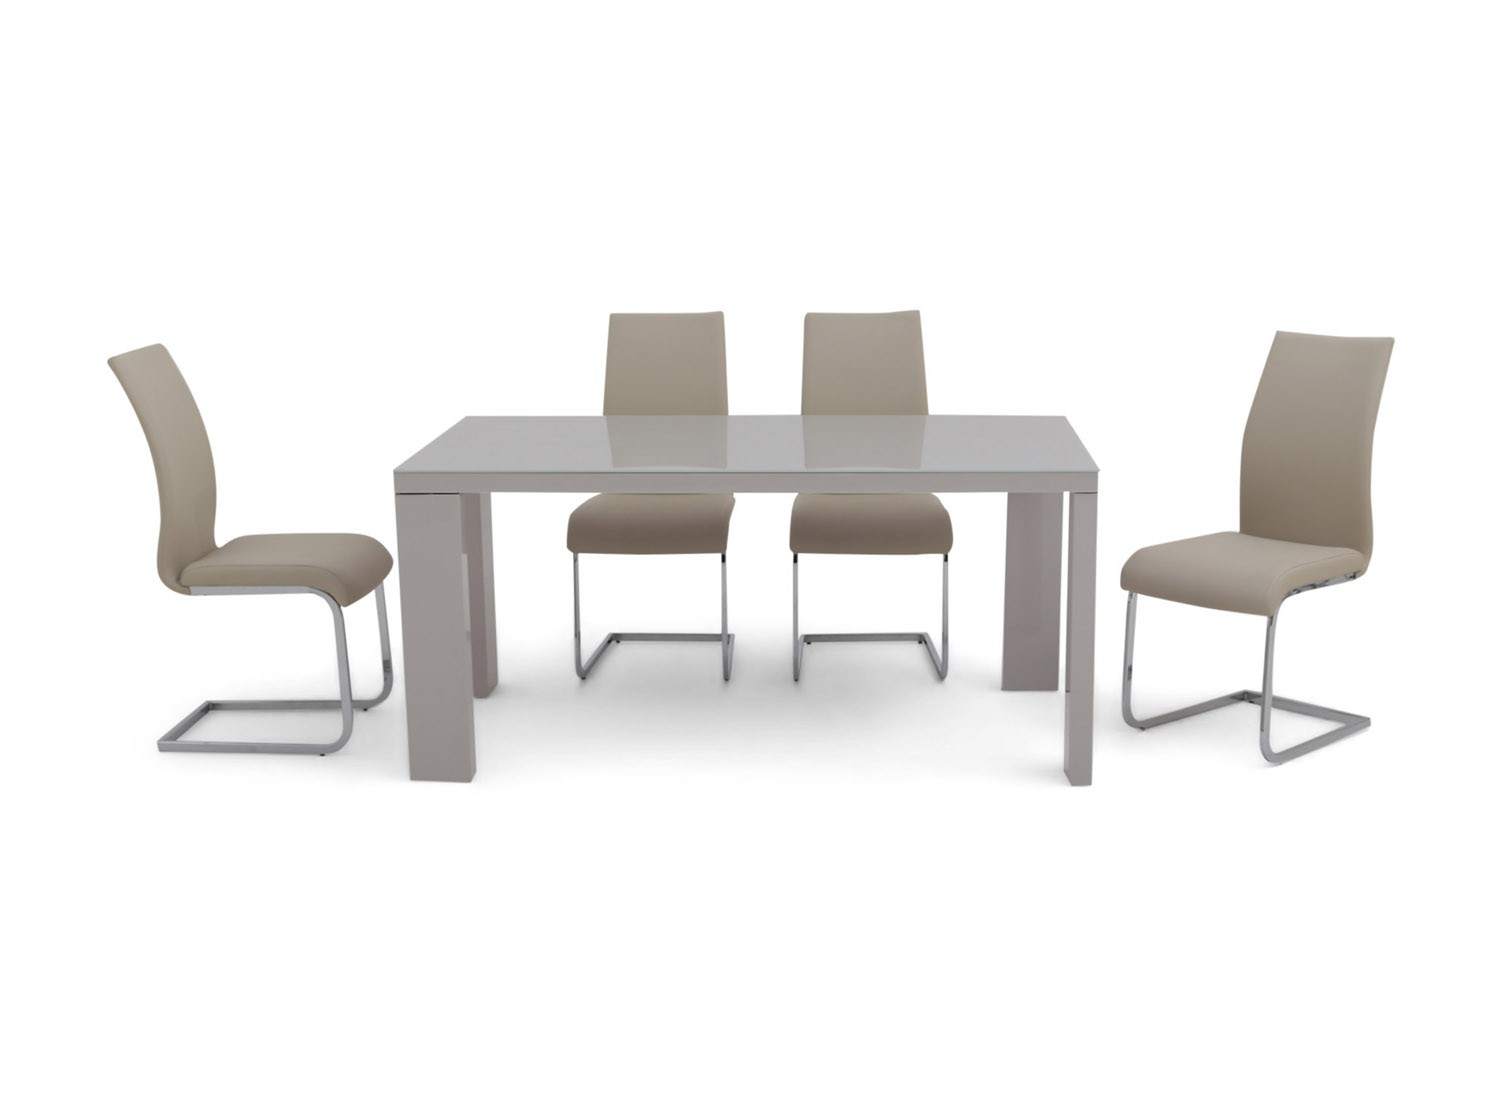 https://www.firstfurniture.co.uk/pub/media/catalog/product/f/a/fairmont_lucca_grey_high_gloss_dining_table_6_paolo_black_chairs_2.jpg